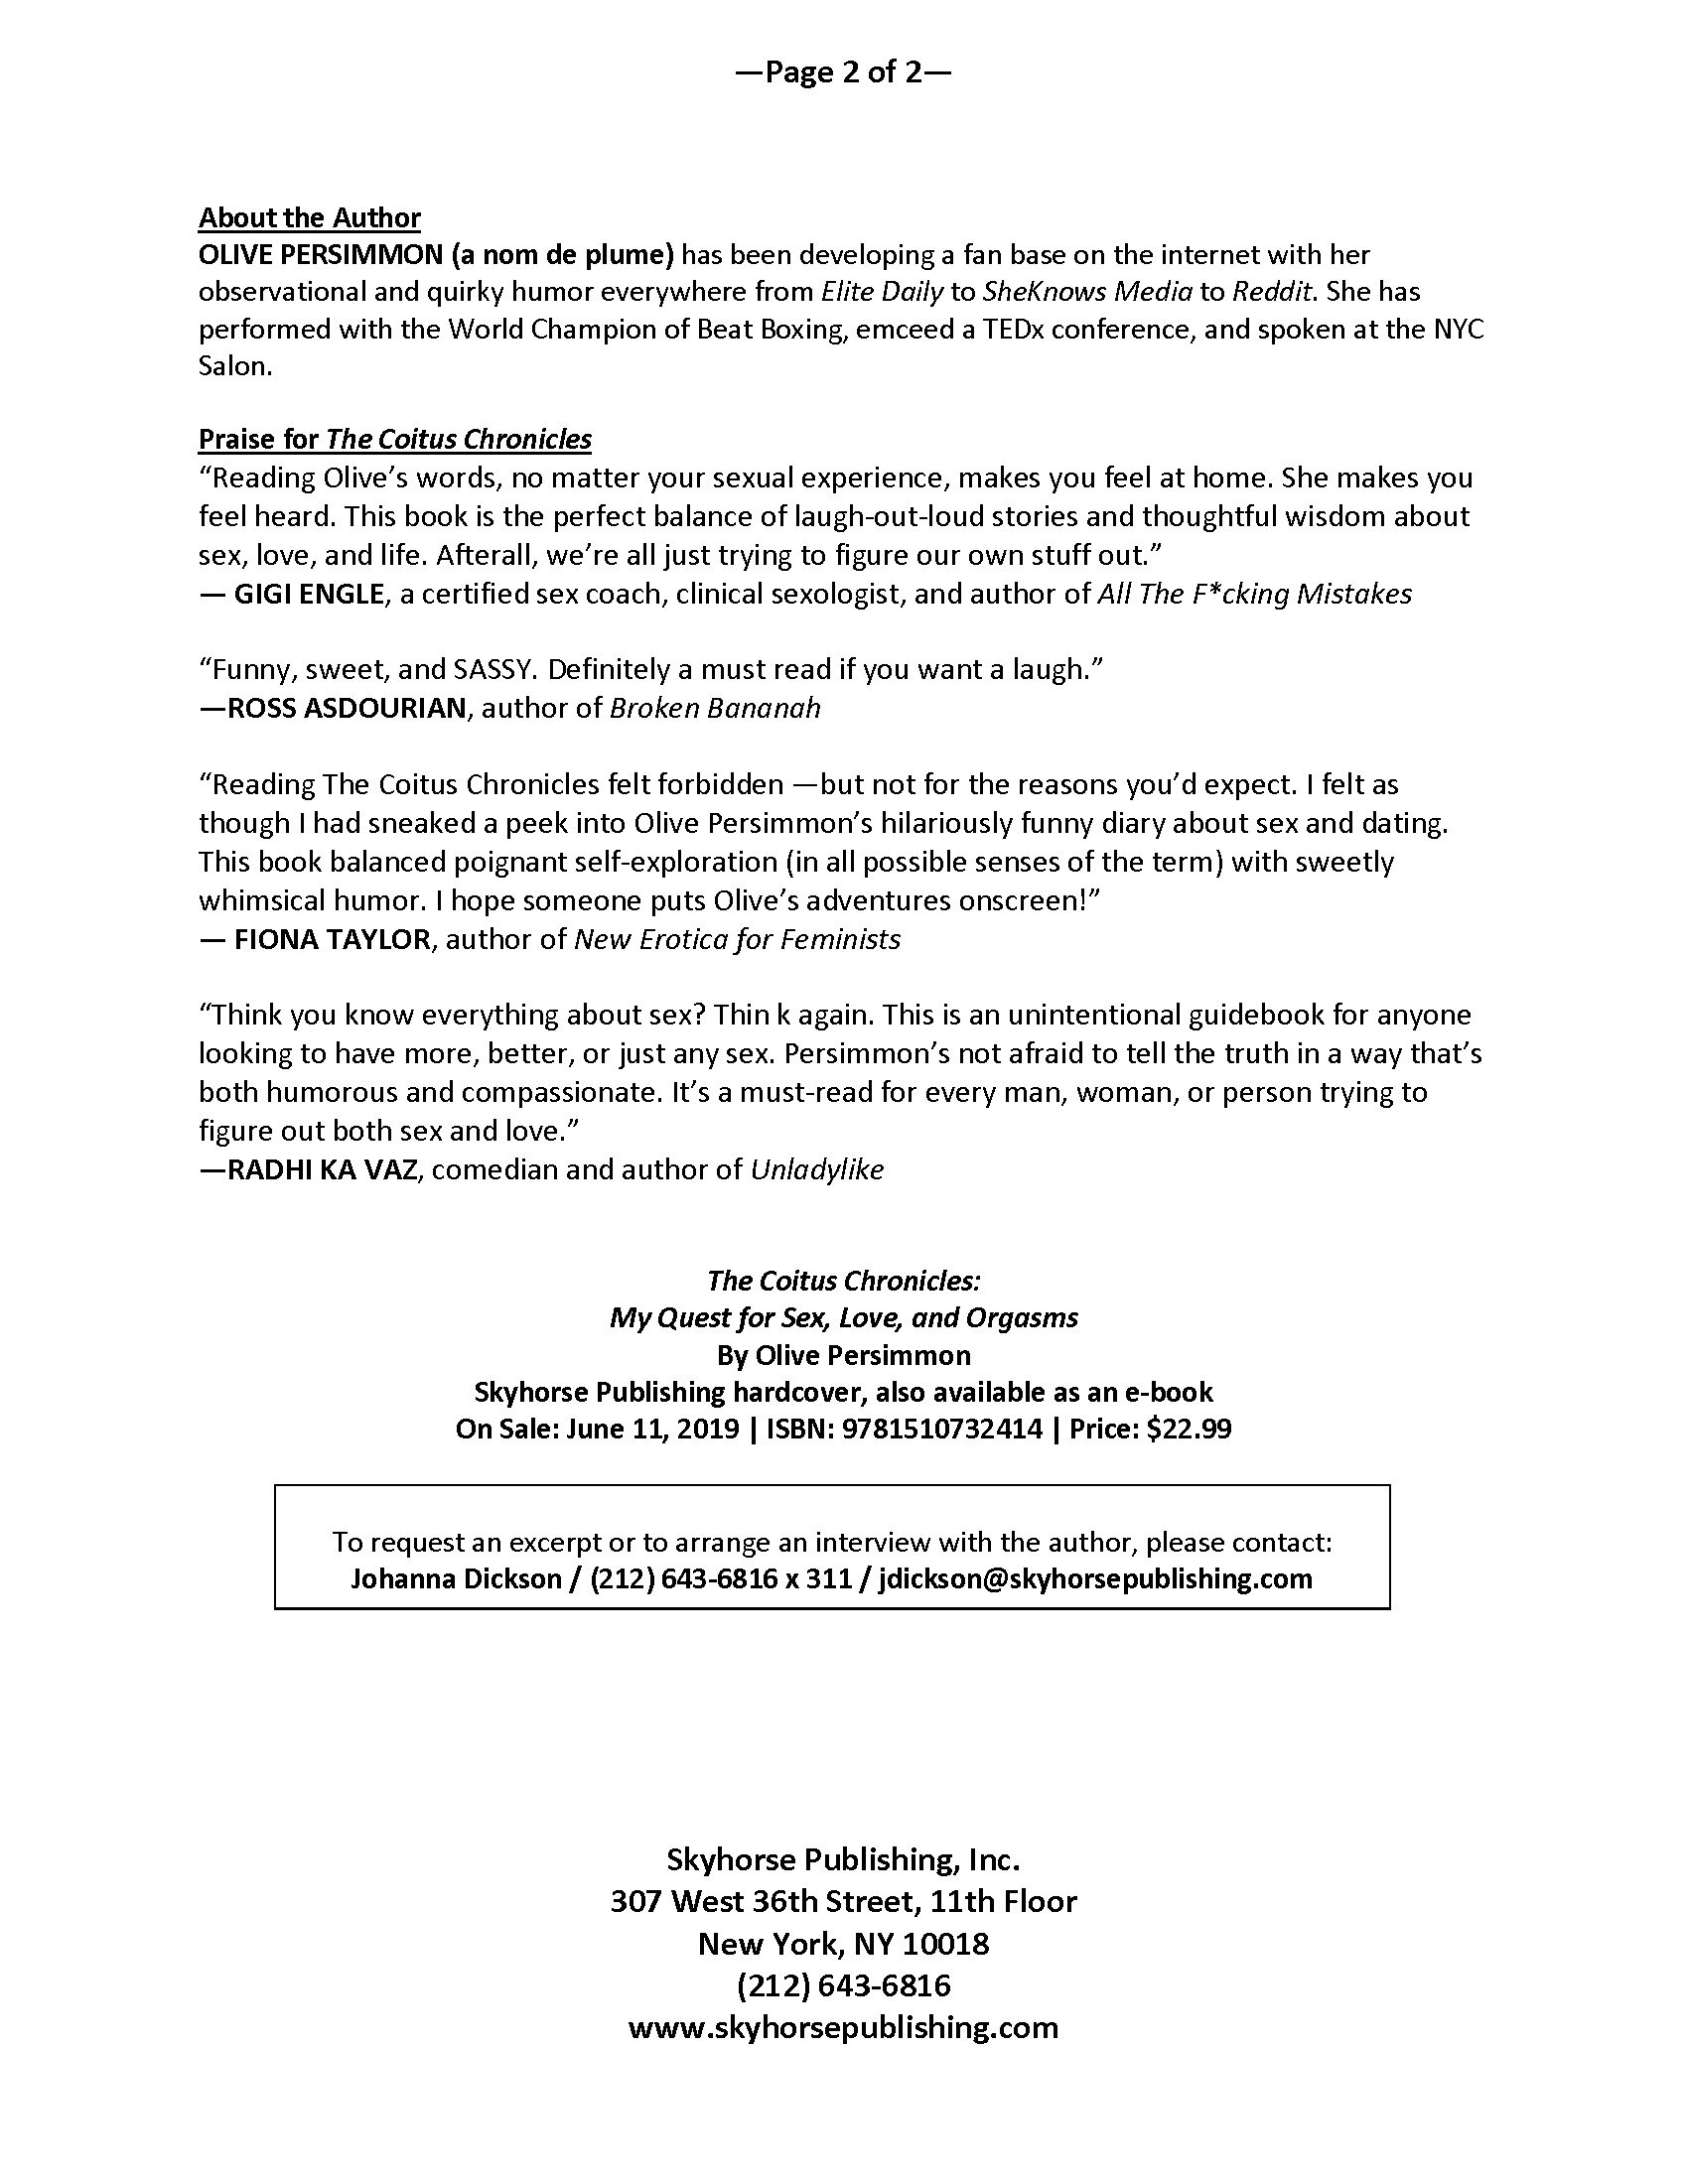 Coitus Chronicles Press Release (1)_Page_2.jpg